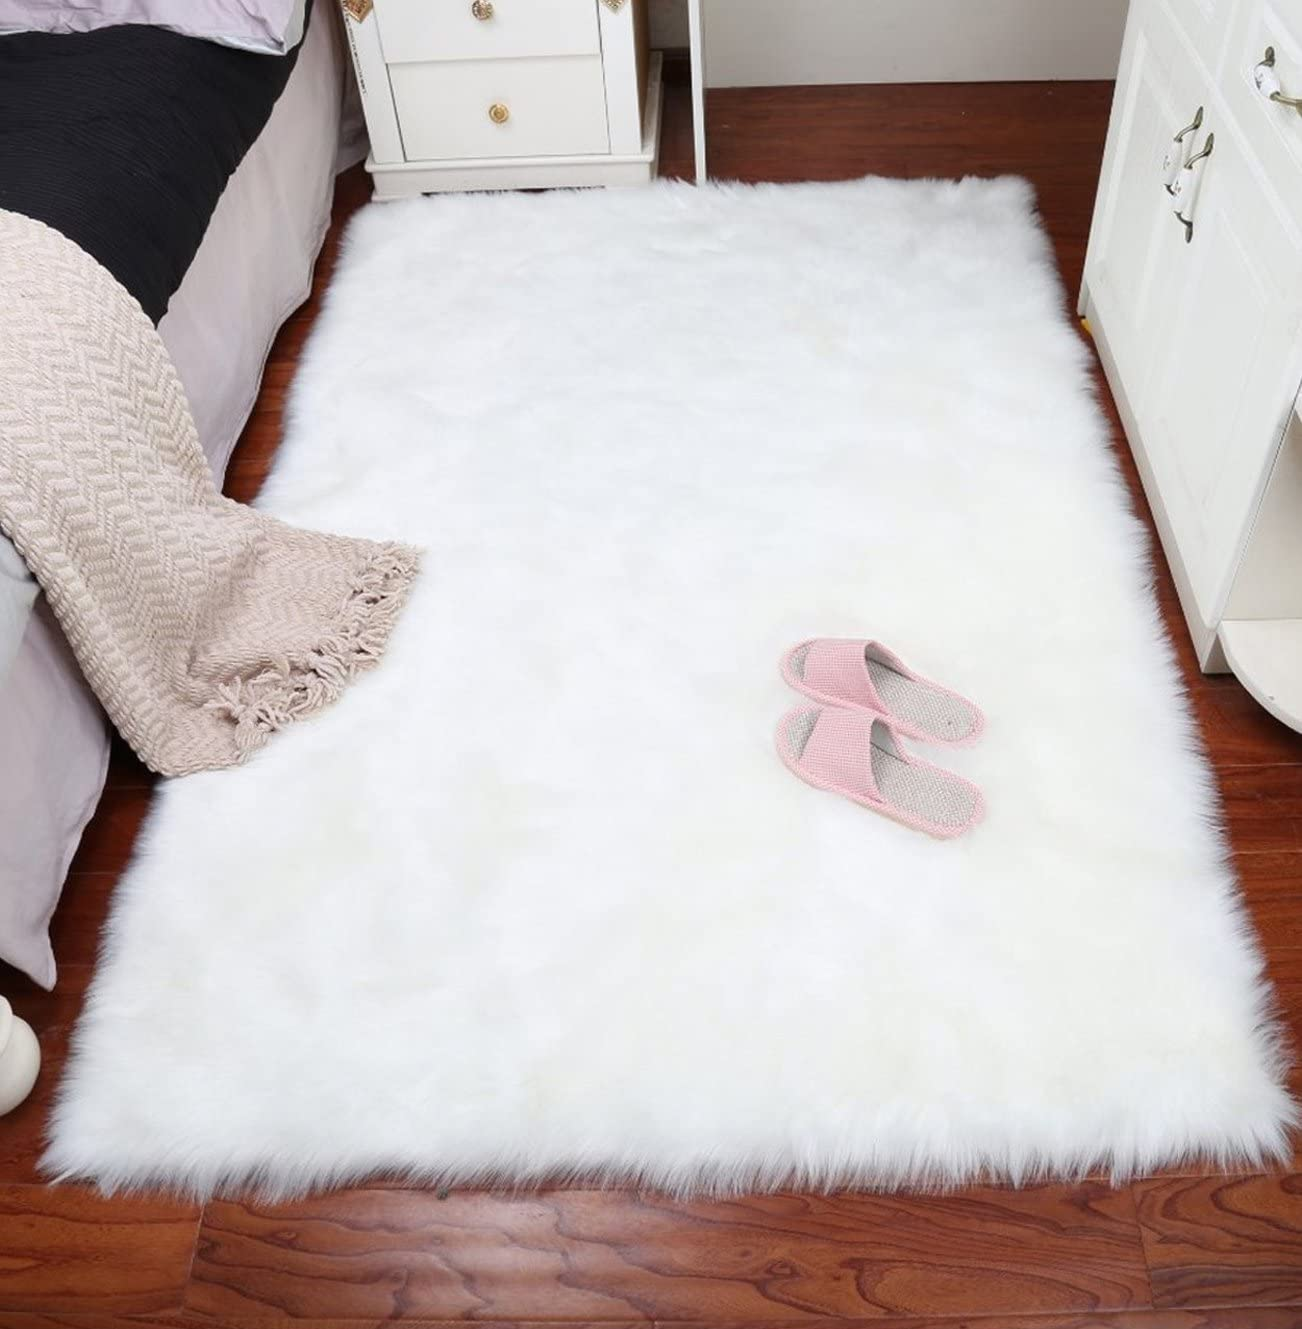 AUTENPOO Faux Fur Sheepskin Area Rug,Solid Shaggy Area Rugs for Living Bedroom Floor – White 9ftx12ft